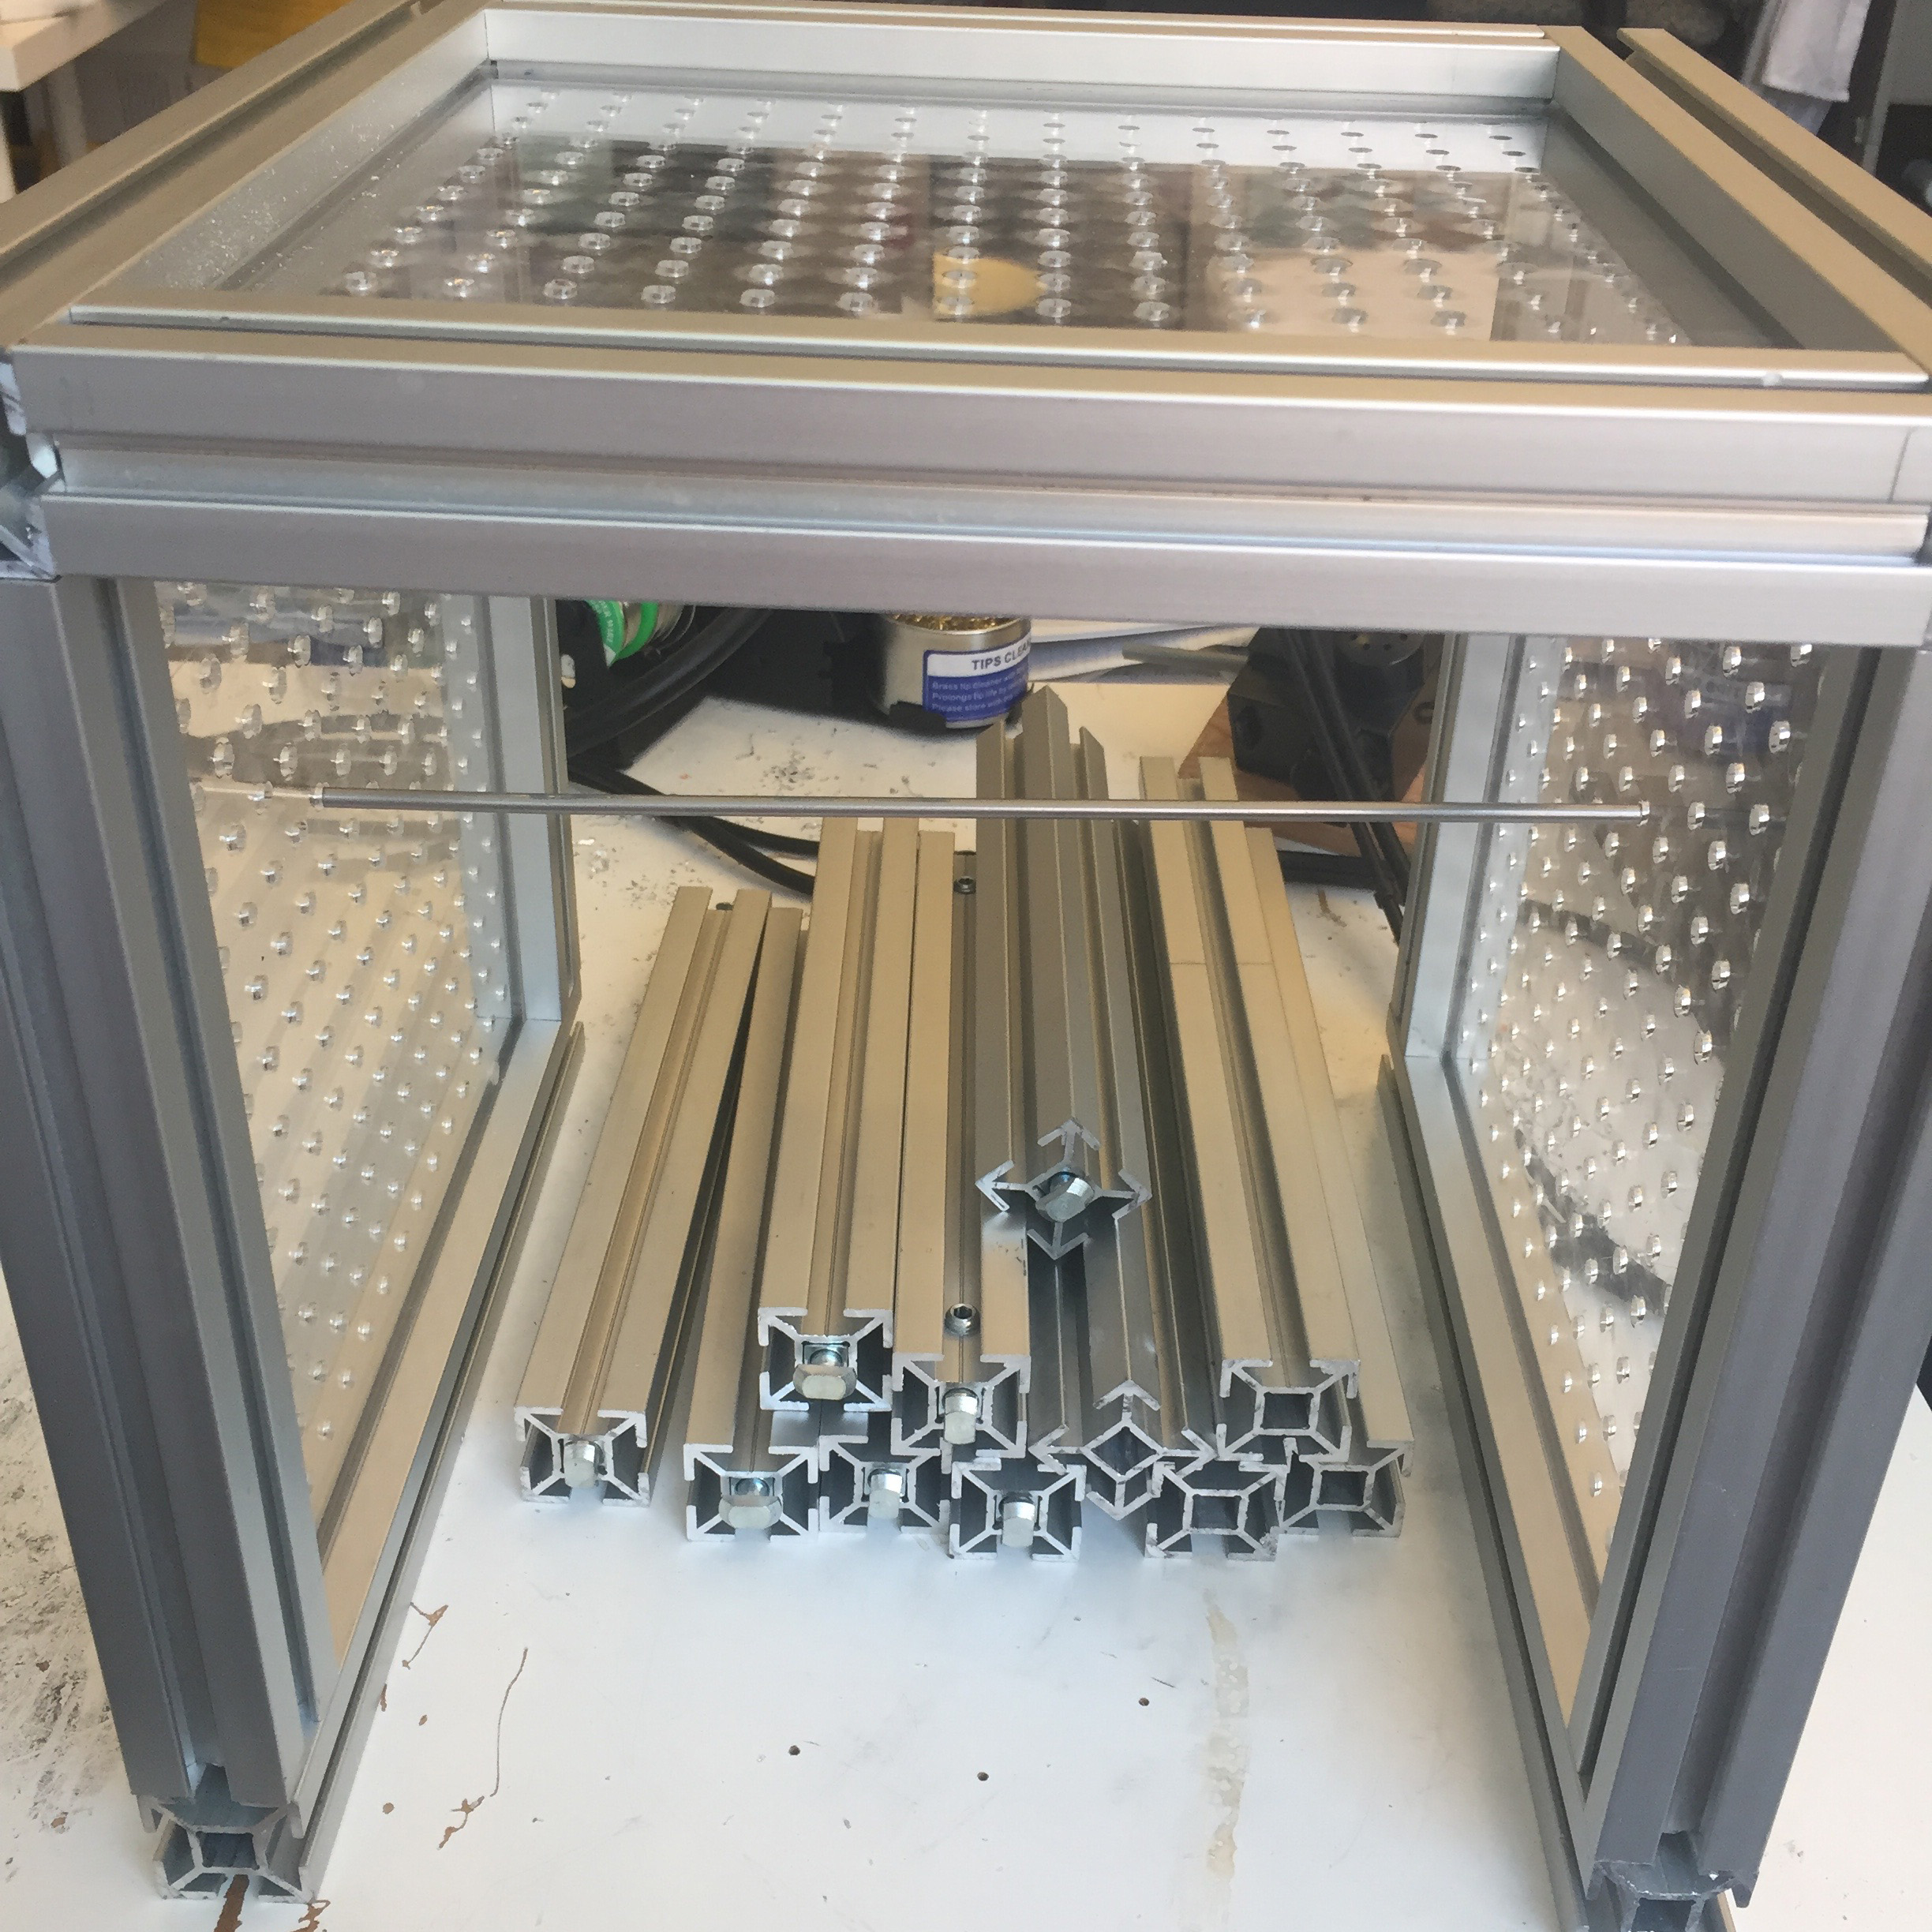 Prototype of a frame for a DIY automata machine. The plexiglass boards were lasercut at a local makerspace and the aluminum frame was designed and crafted by an exhibits developer.